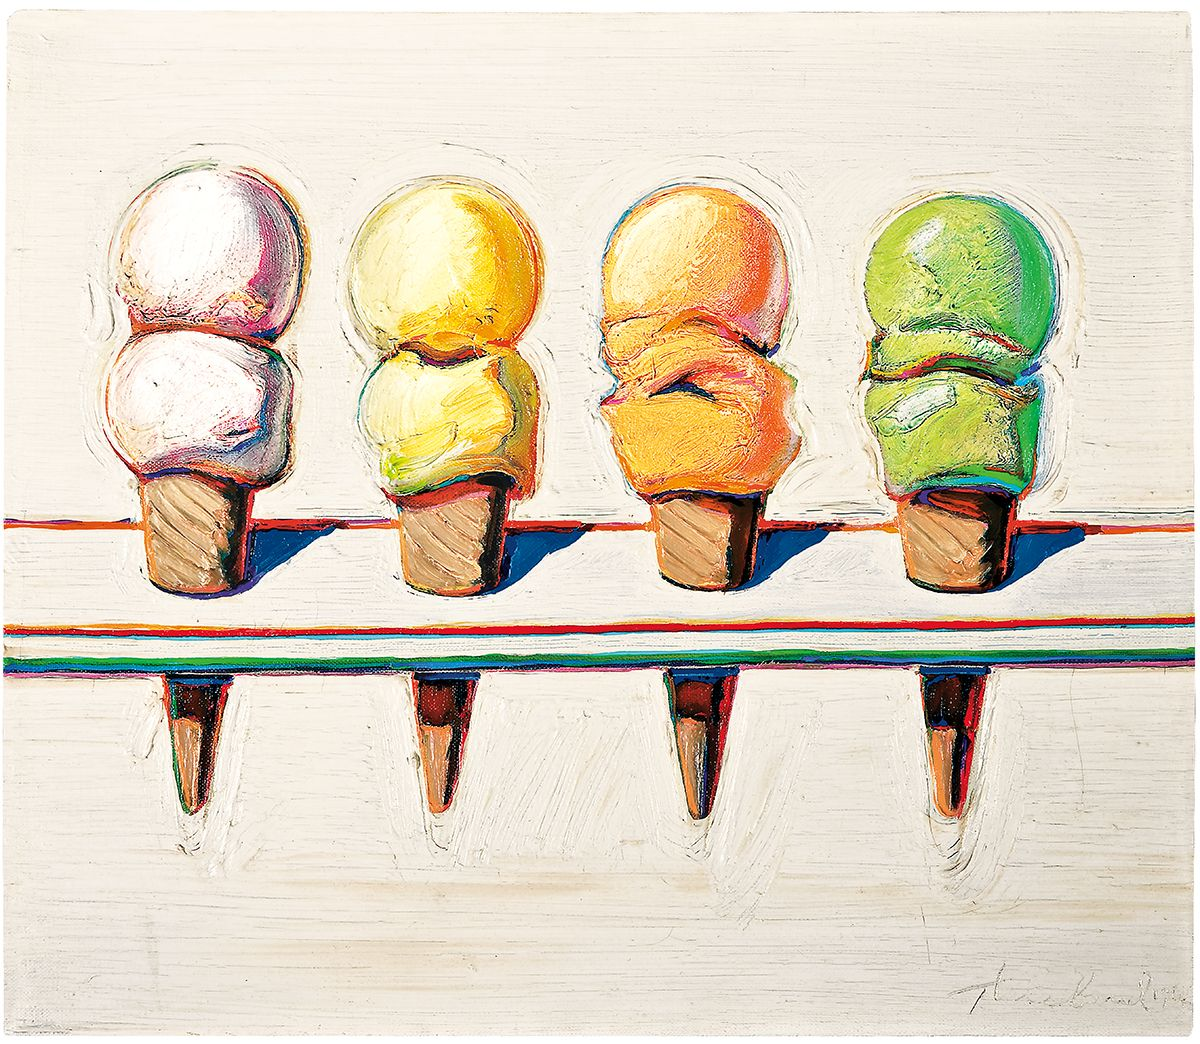 Wayne Thiebaud, Four Ice Cream Cones,1964, oil on canvas, 14 x 16 in. (35.6 x 40.6 cm). Collection of Phoenix Art Museum, Museum purchase - COMPAS Funds. Photo by Ken Howie / Art ©Wayne Thiebaud / Licensed by VAGA, New York, NY